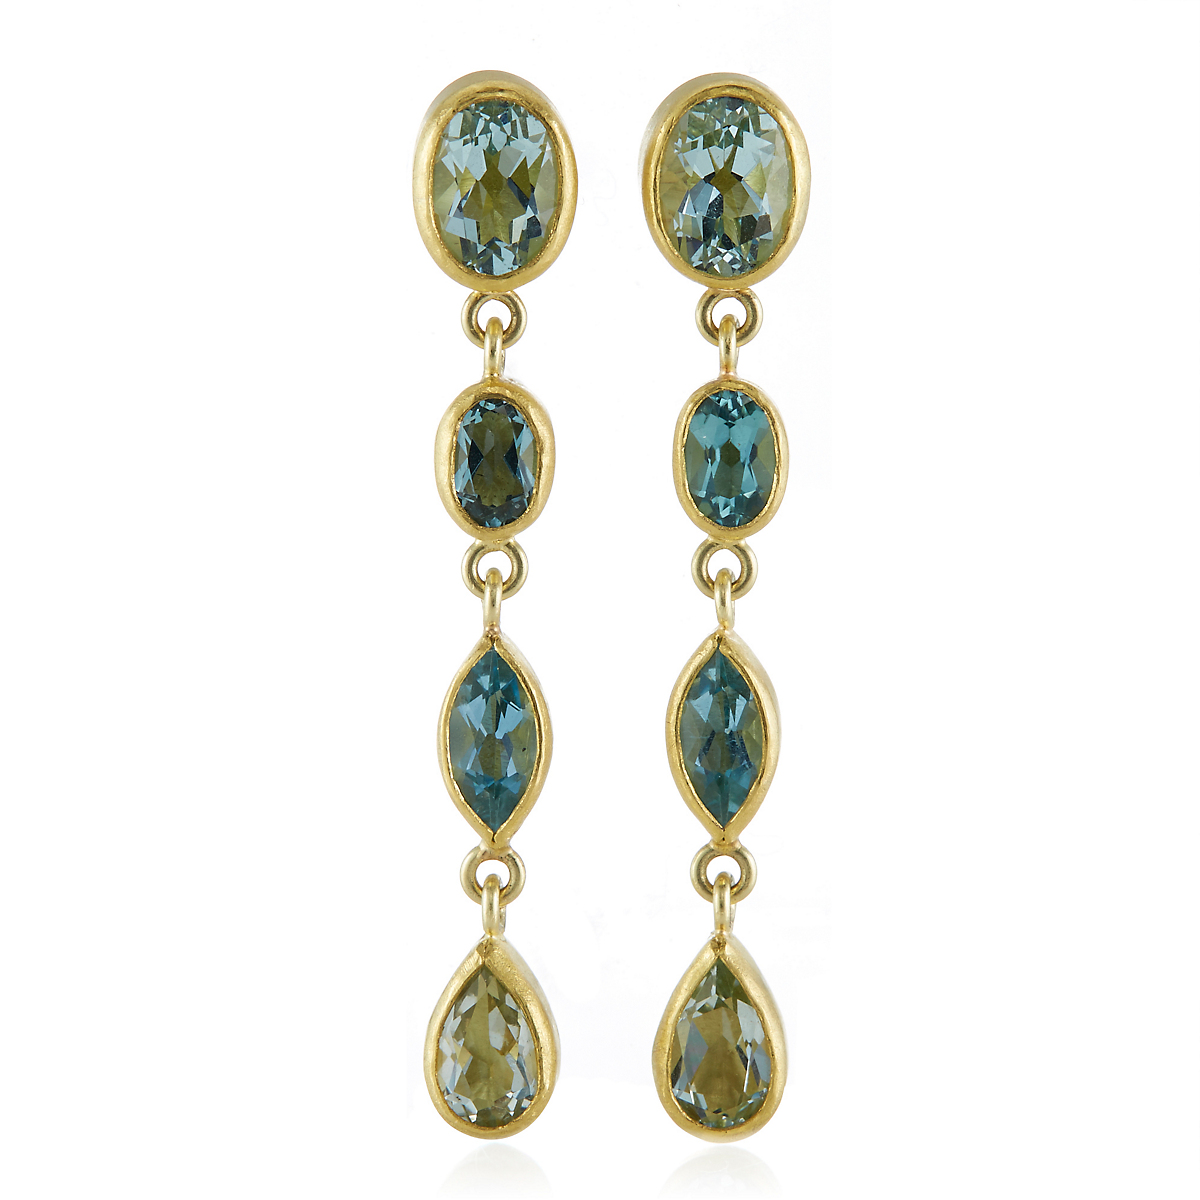 Petra Class Multifaceted Aqua Chain Earrings